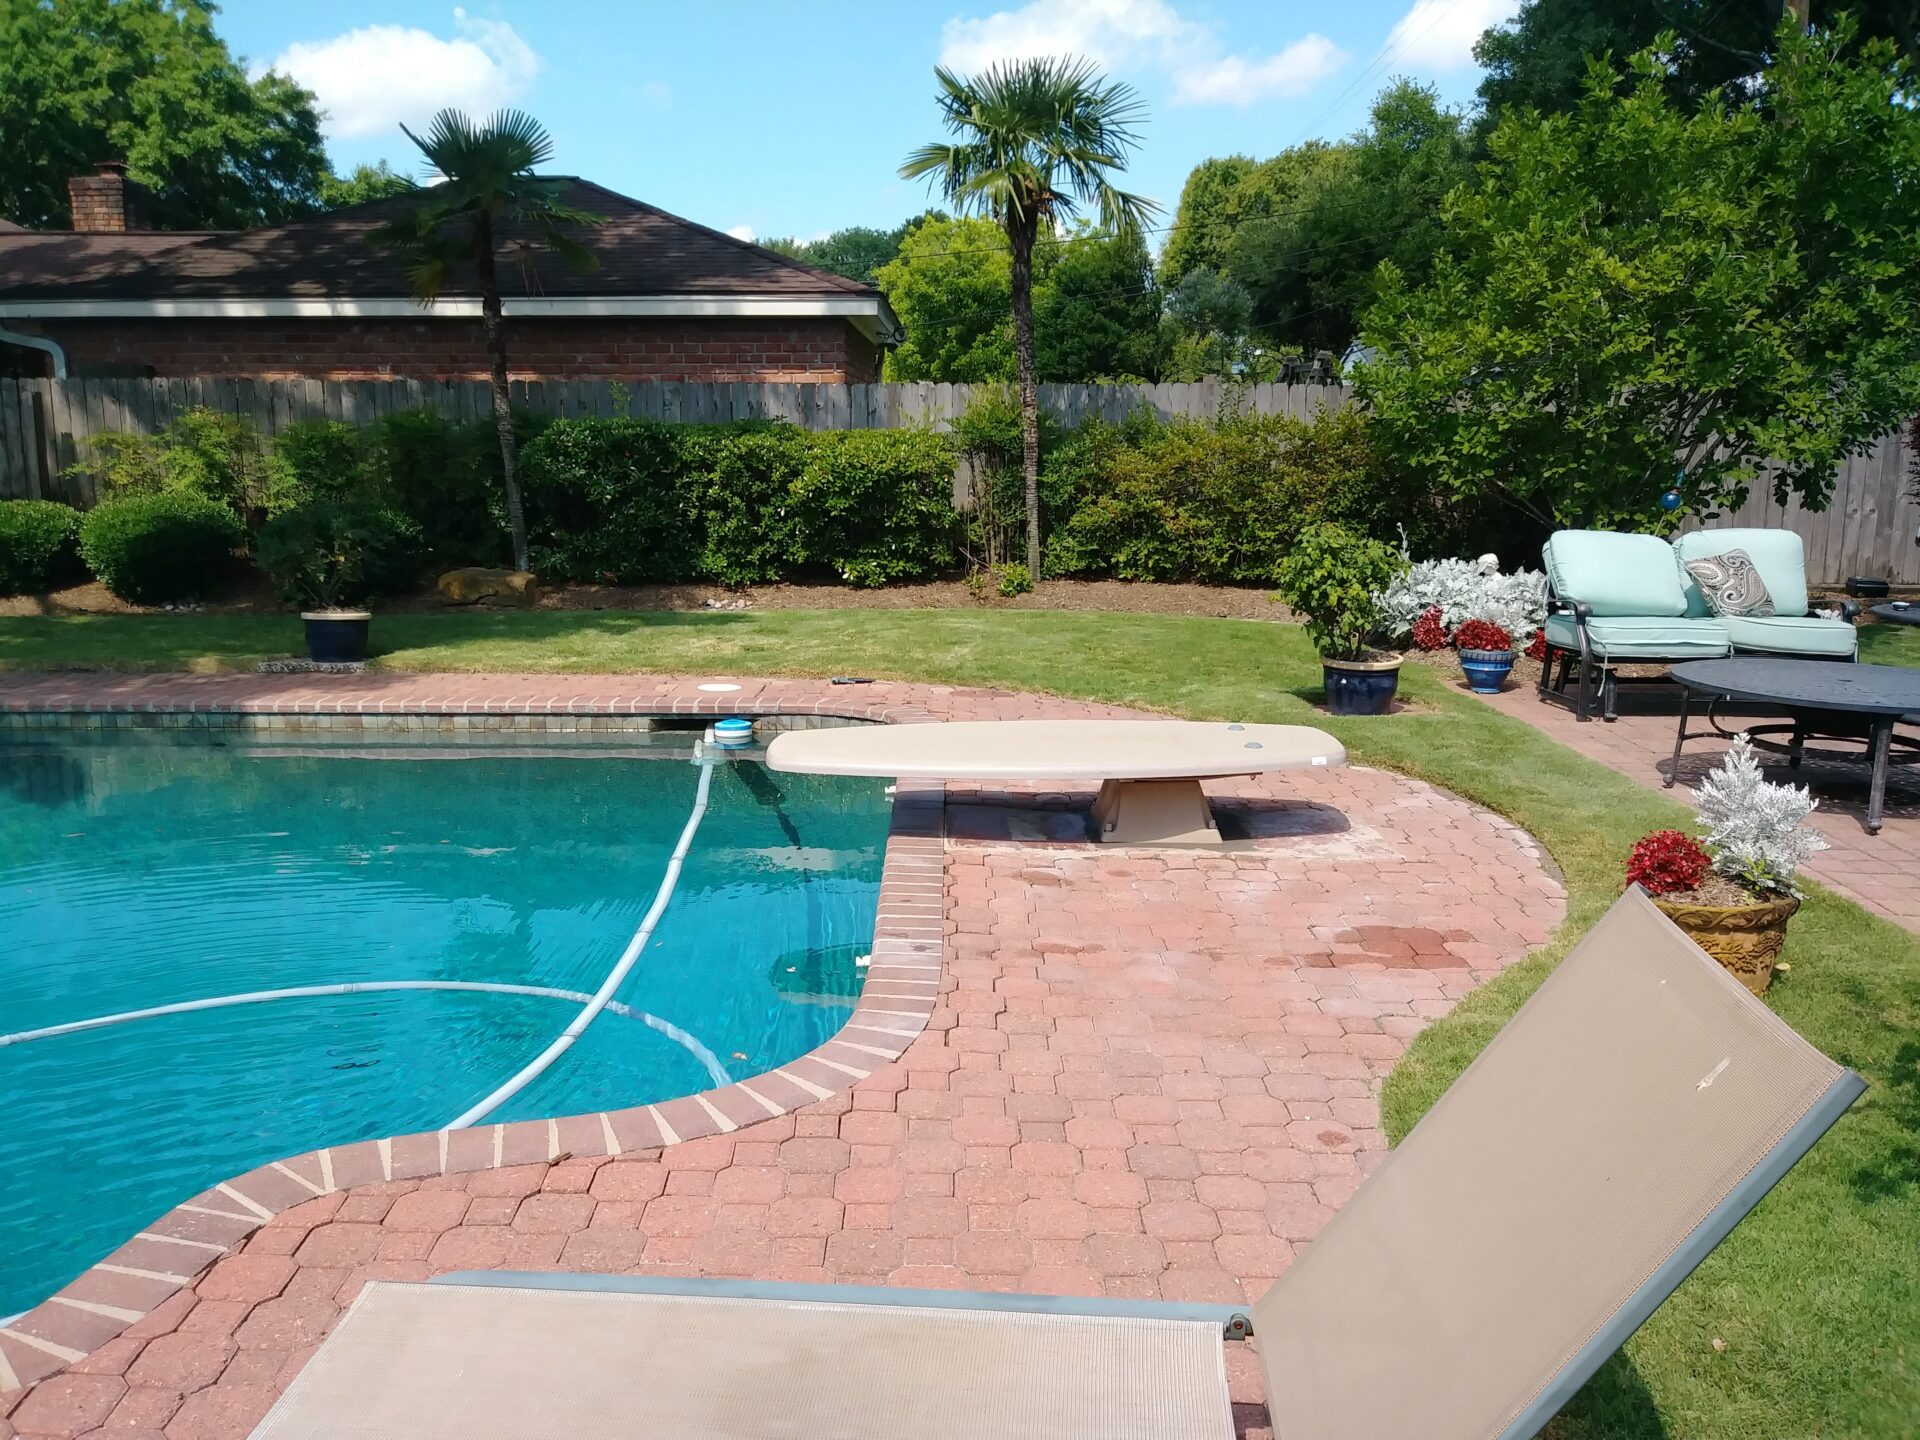 Diving Board Replacement - Jersey Village - After Image001